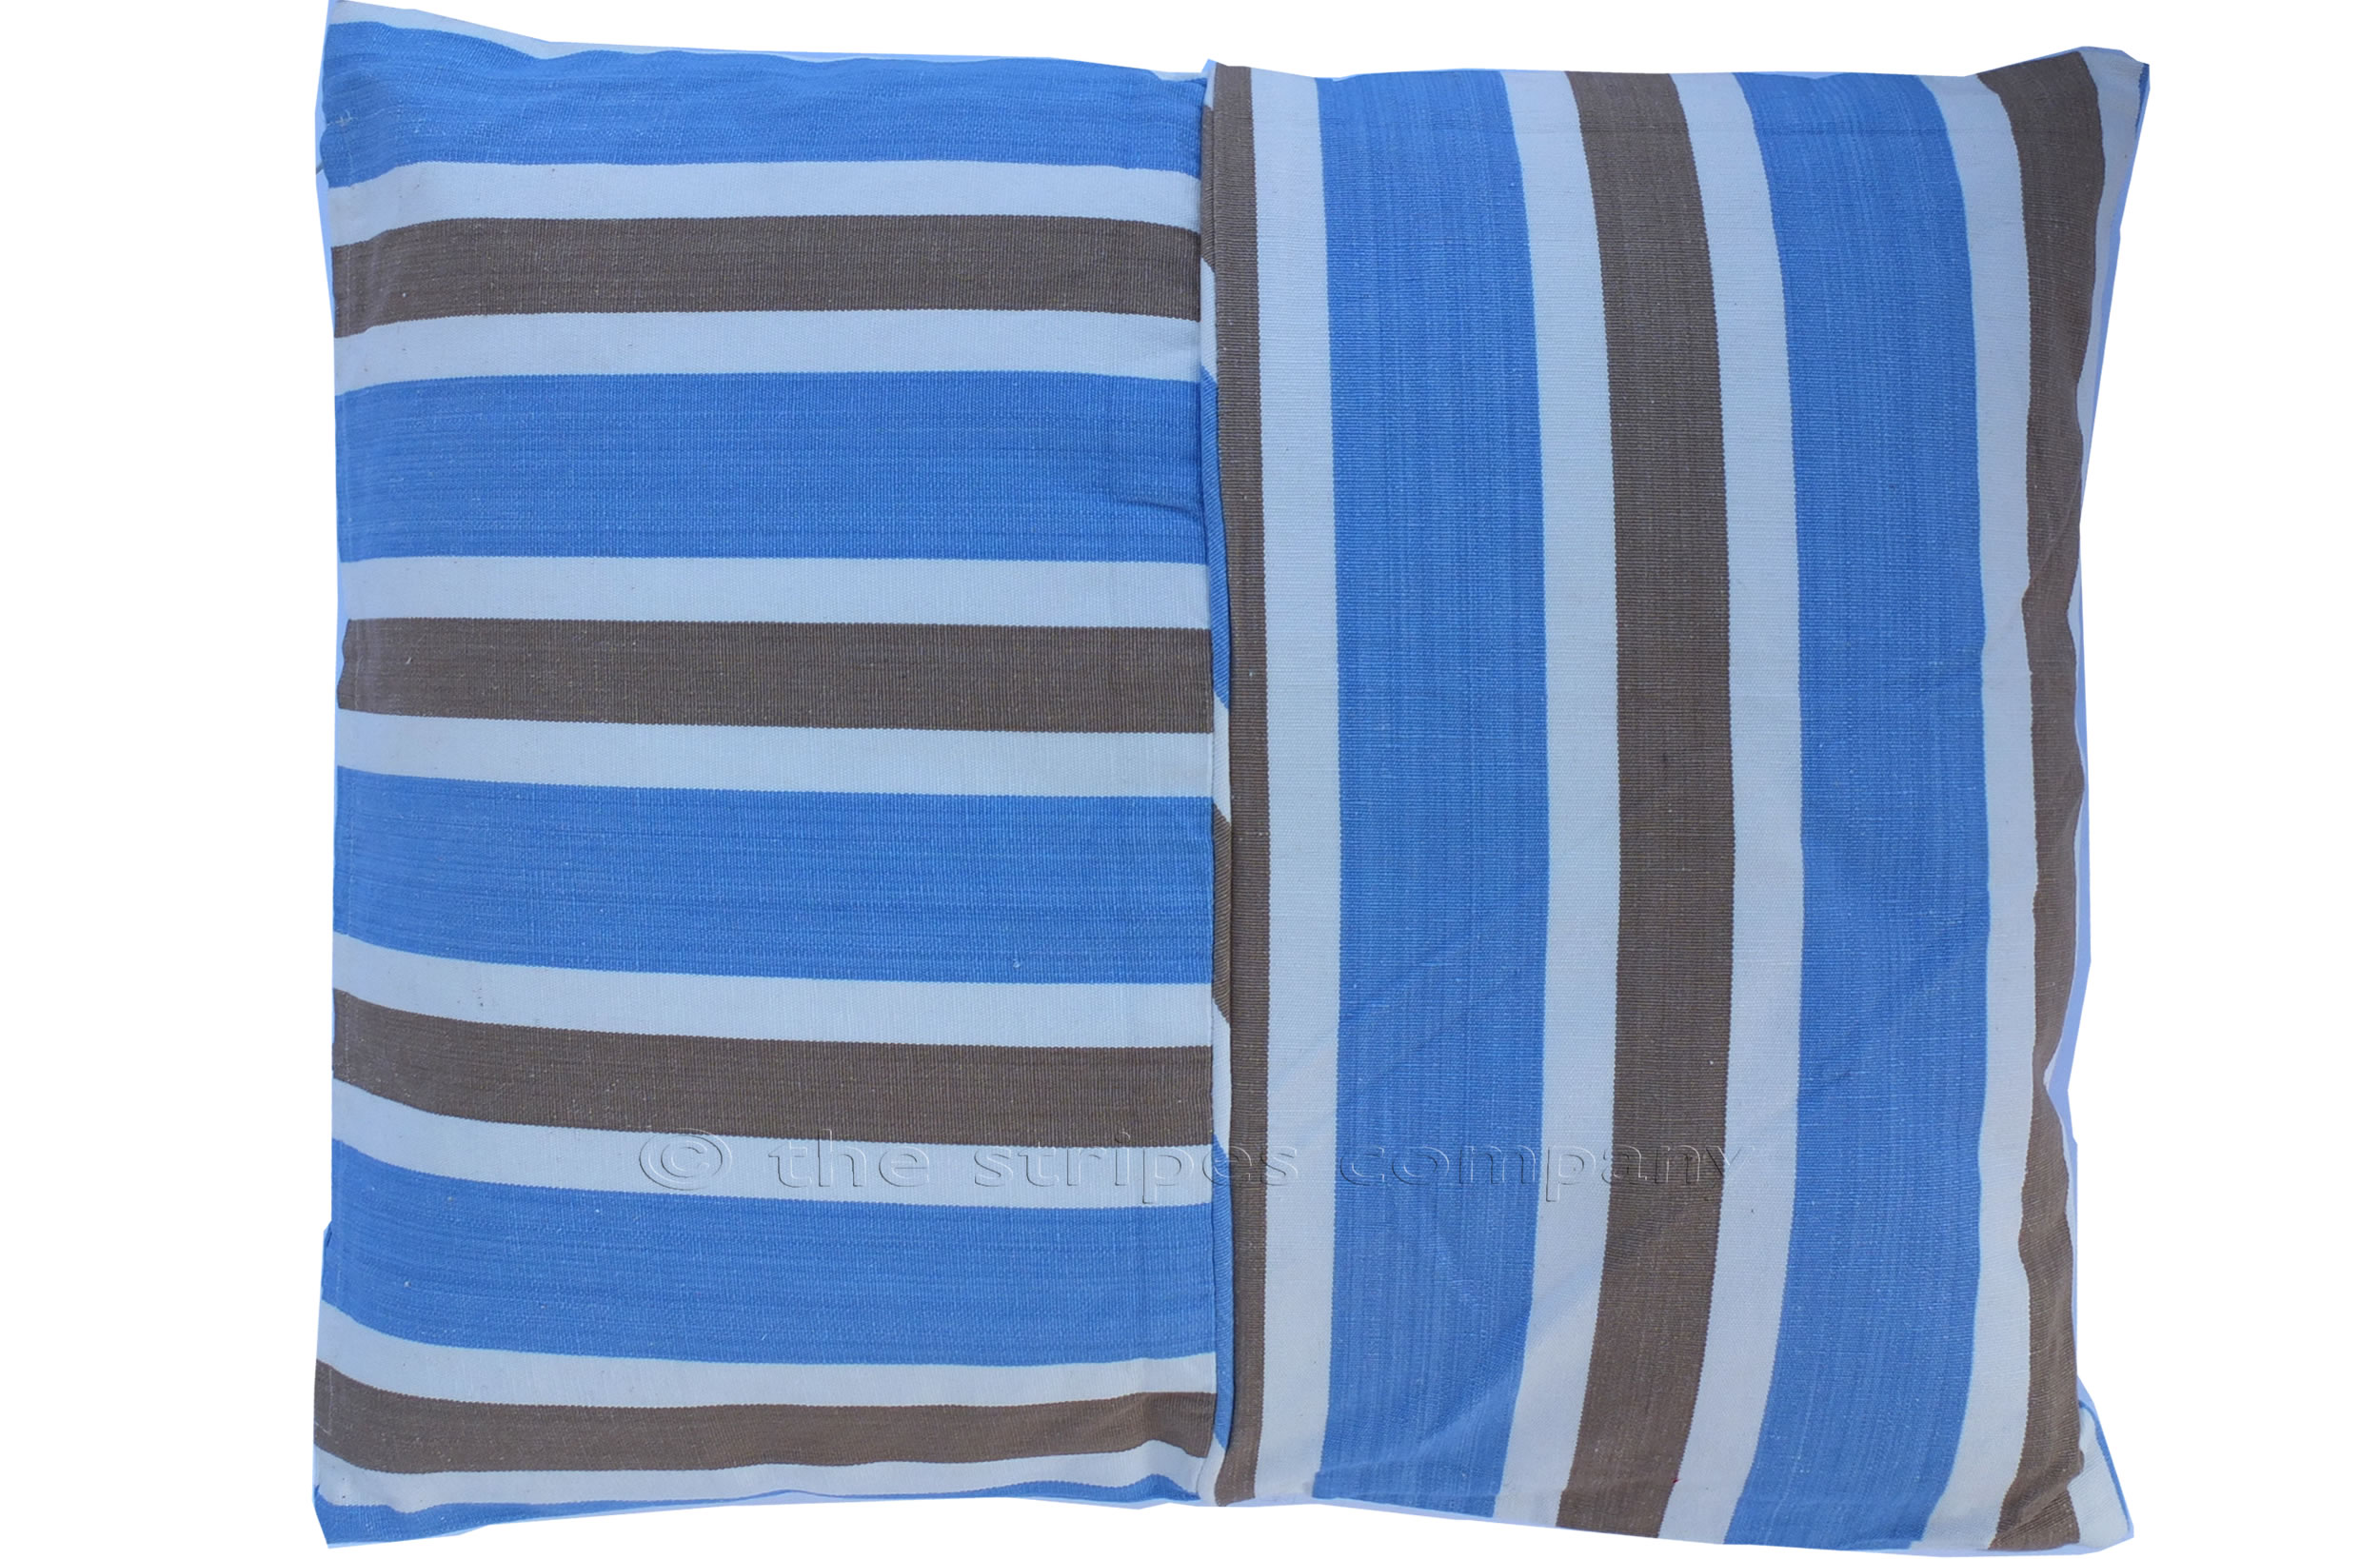 sky blue, beige, white- Striped Piped Cushions | Square Piped Cushions